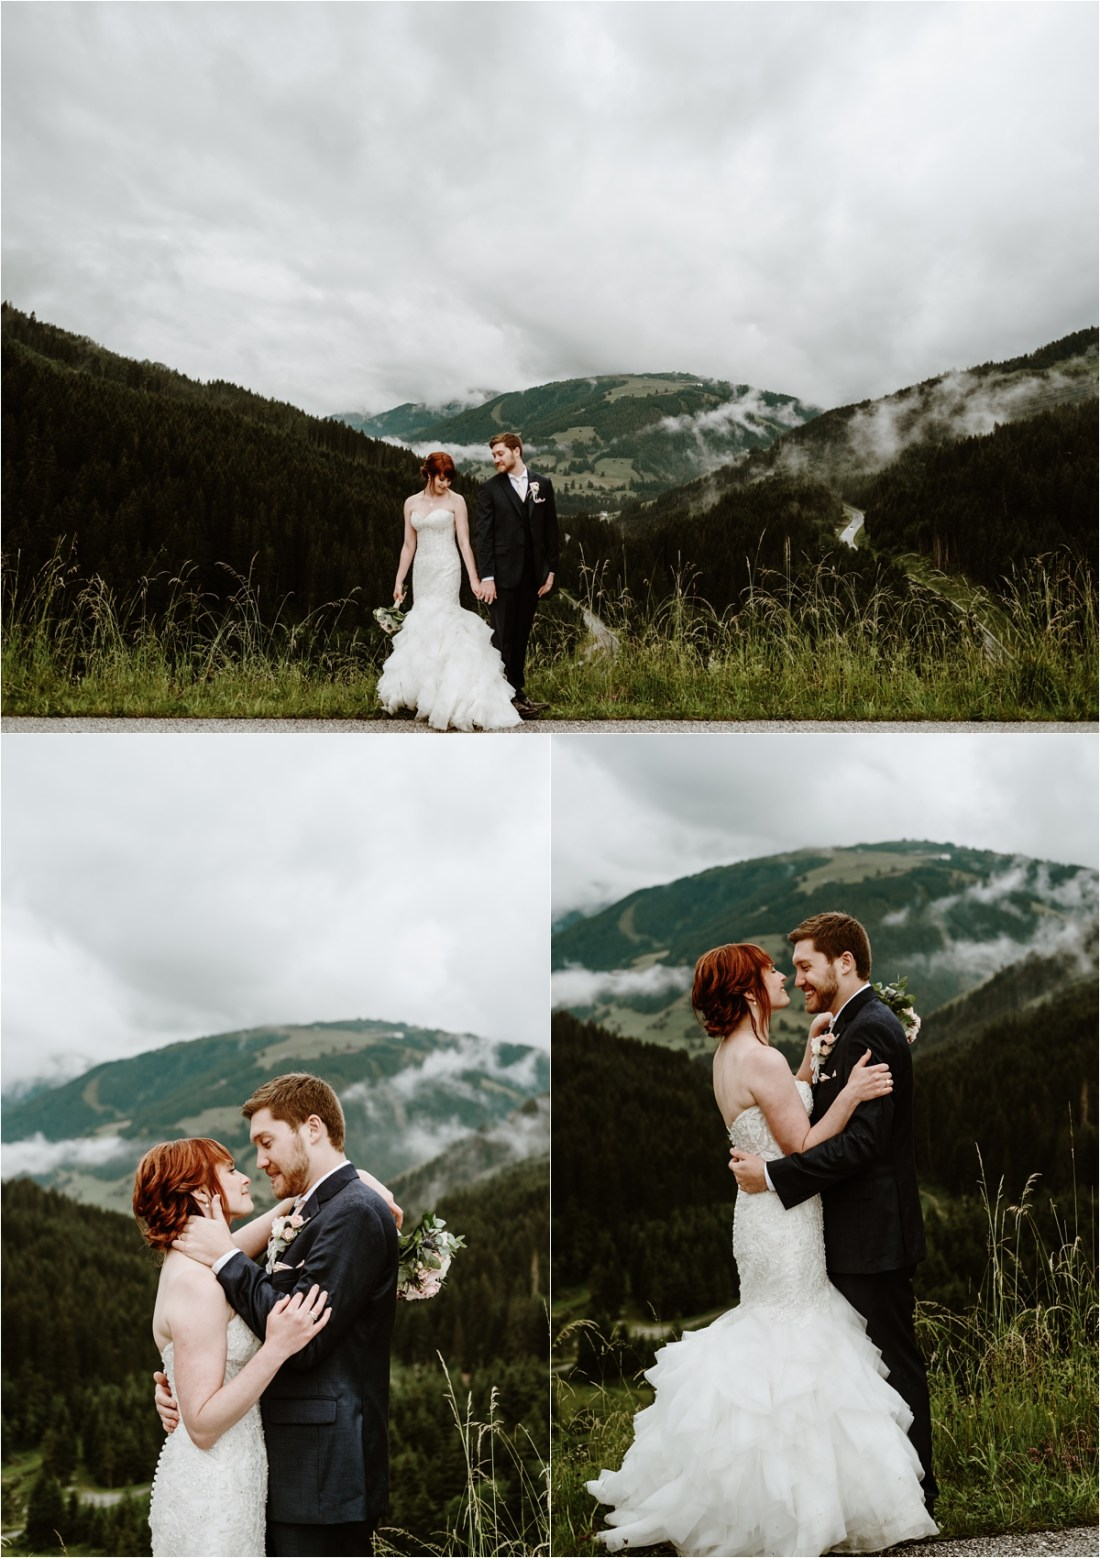 Moody clouds and dark skies for Emma & Adam's mountain wedding at the Rössl Alm in GErlos Austria. Photos by Wild Connections Photography